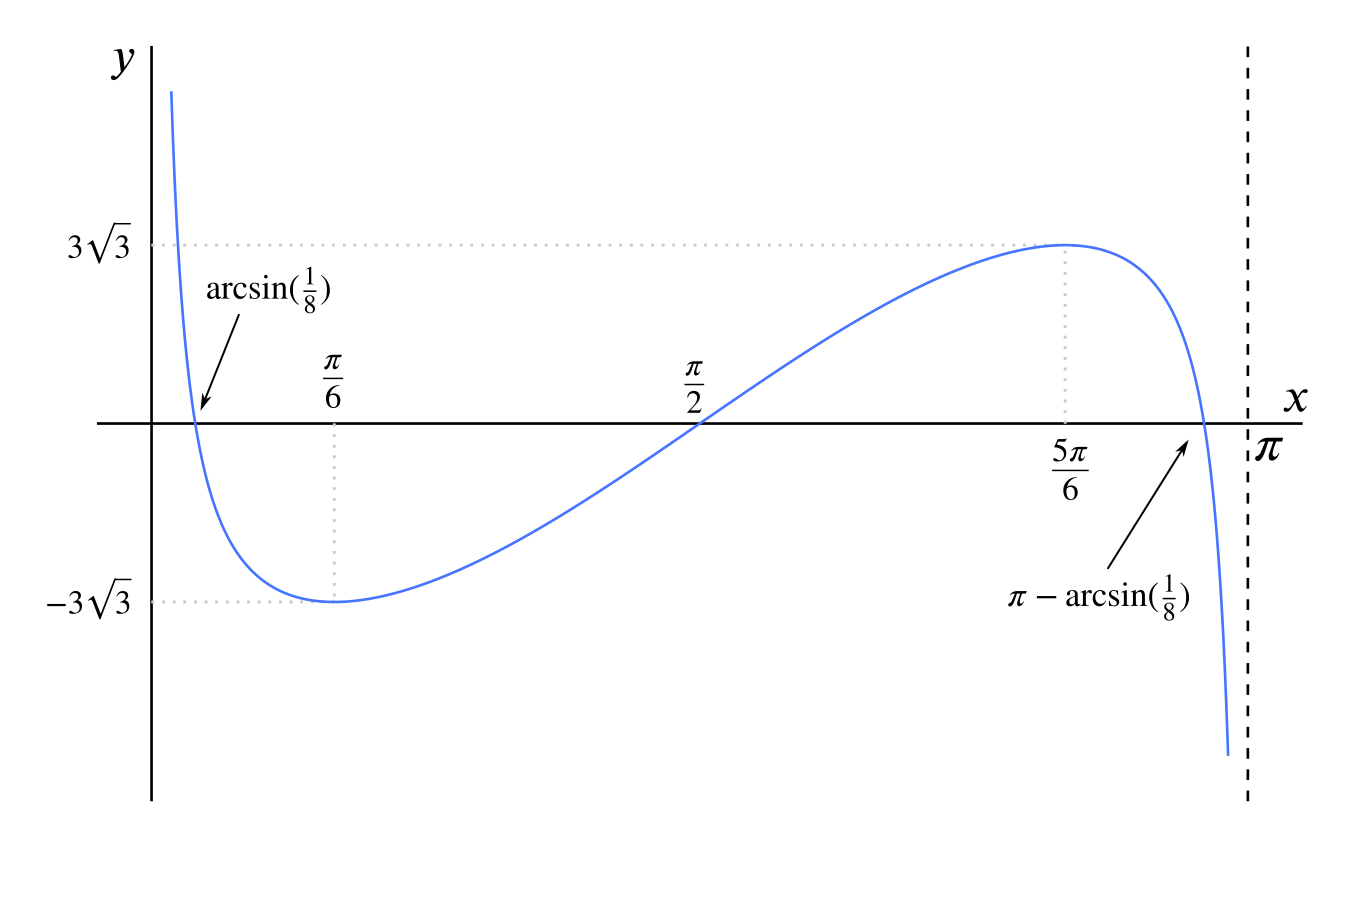 Graph of cot x minus 8 cosine x, with limit behaviour, turning points and roots as described.